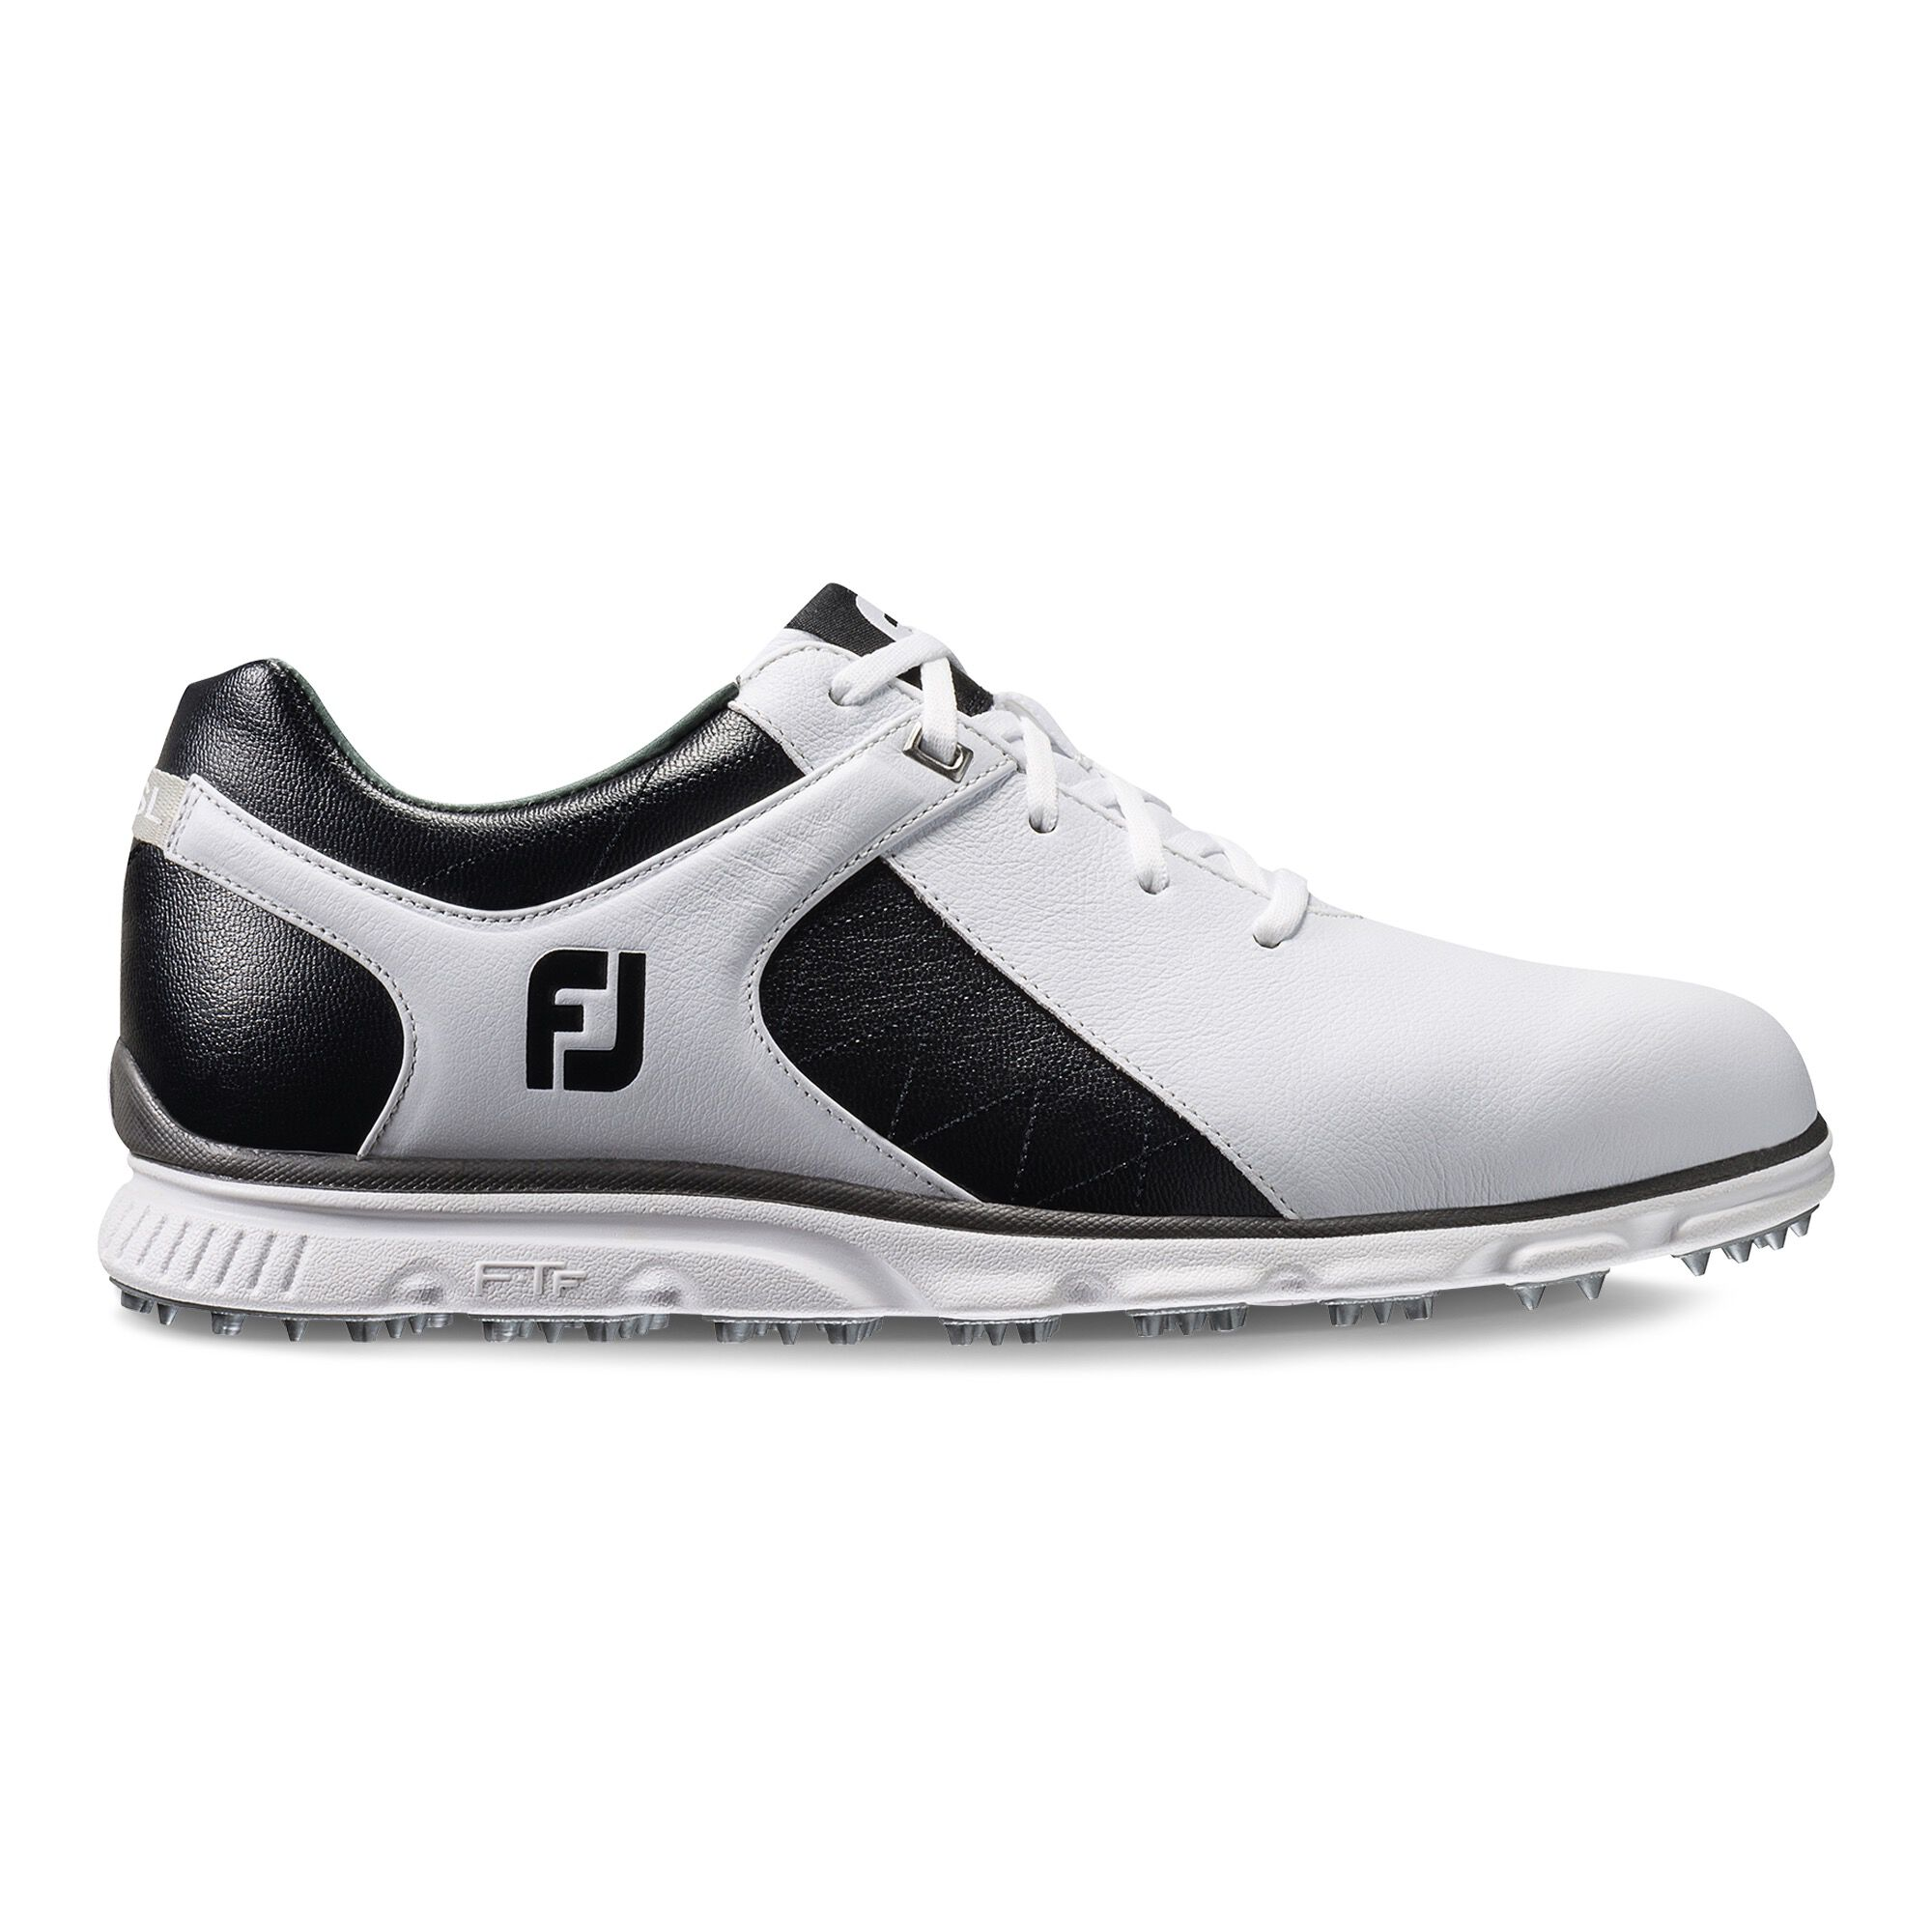 mens golf shoes for sale in south africa